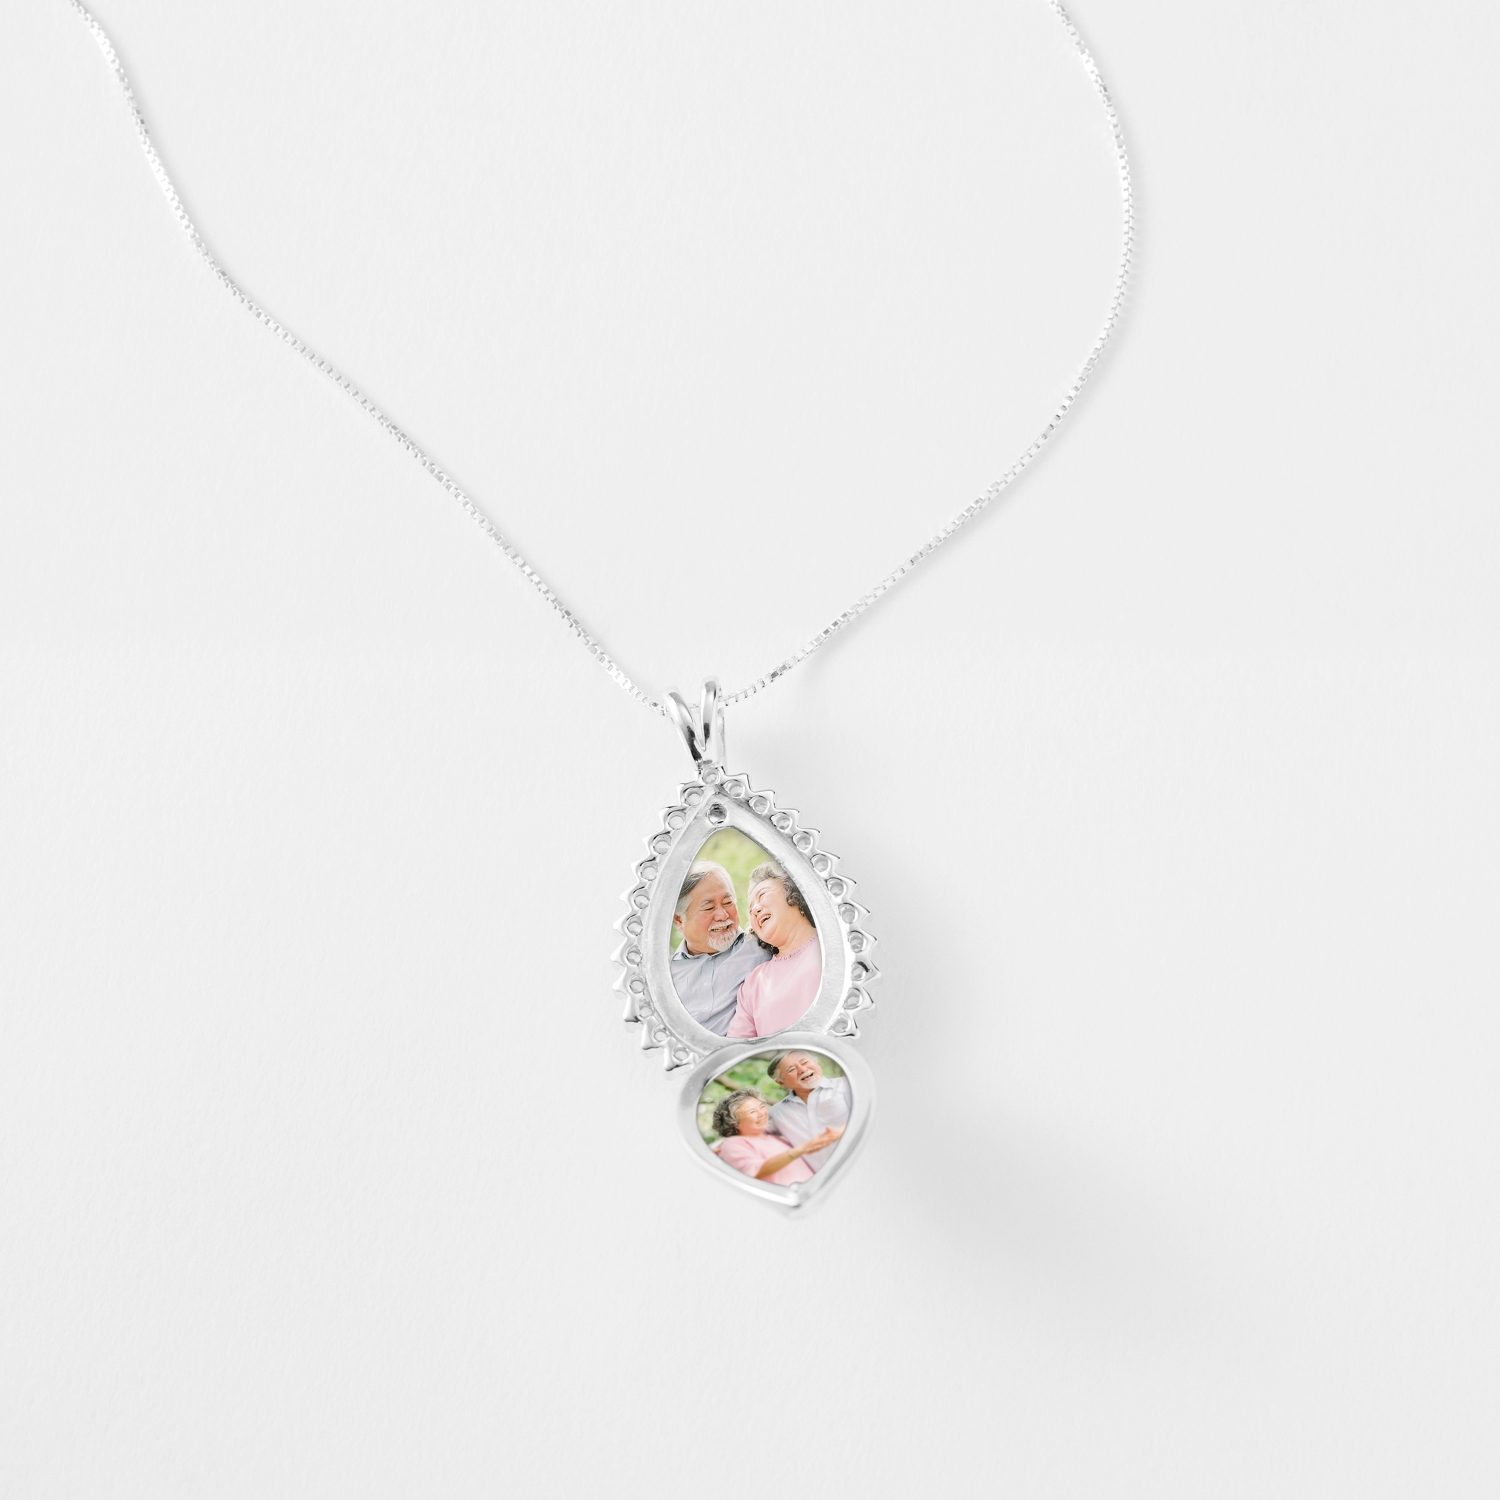 bridal media chain necklace charm locket initial weddings teardrop parties lockets for personalized bridesmaid monogram